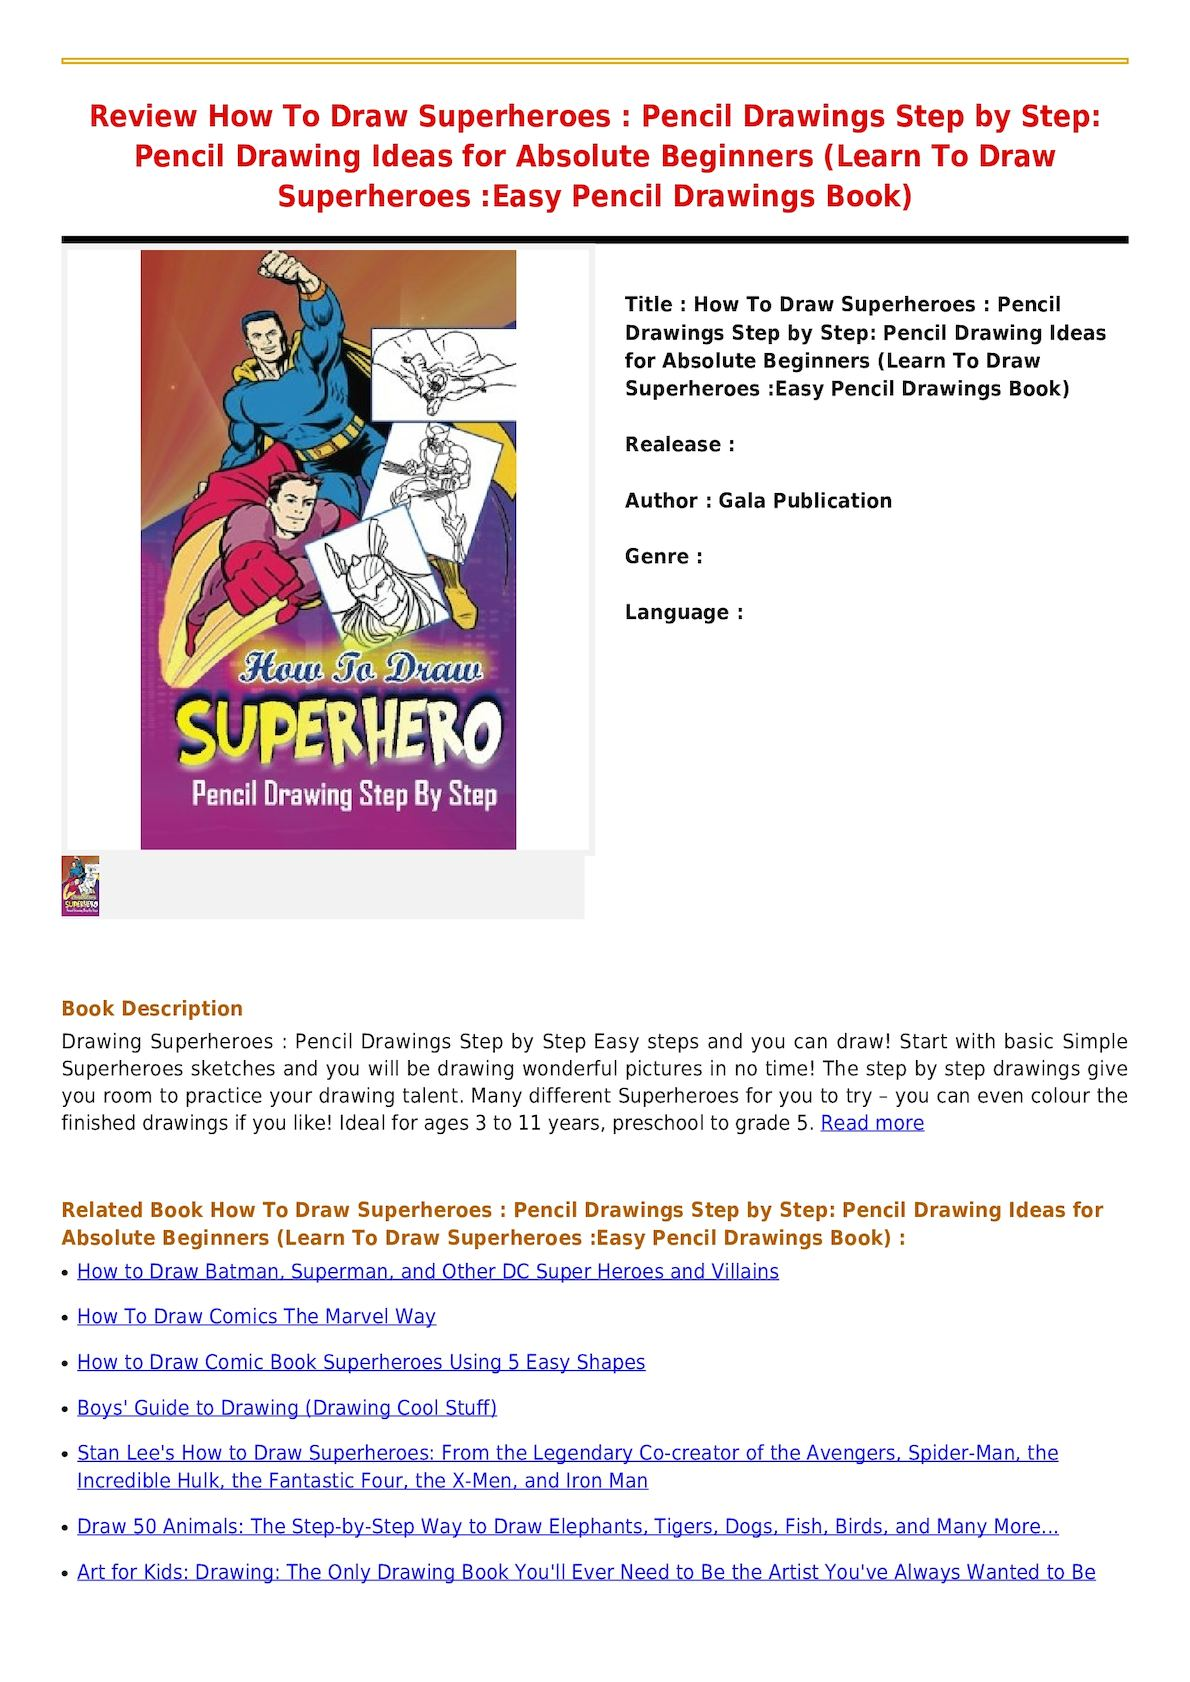 WRG-6273] How To Draw More Comic Book Superheroes Using 5 Easy Shapes